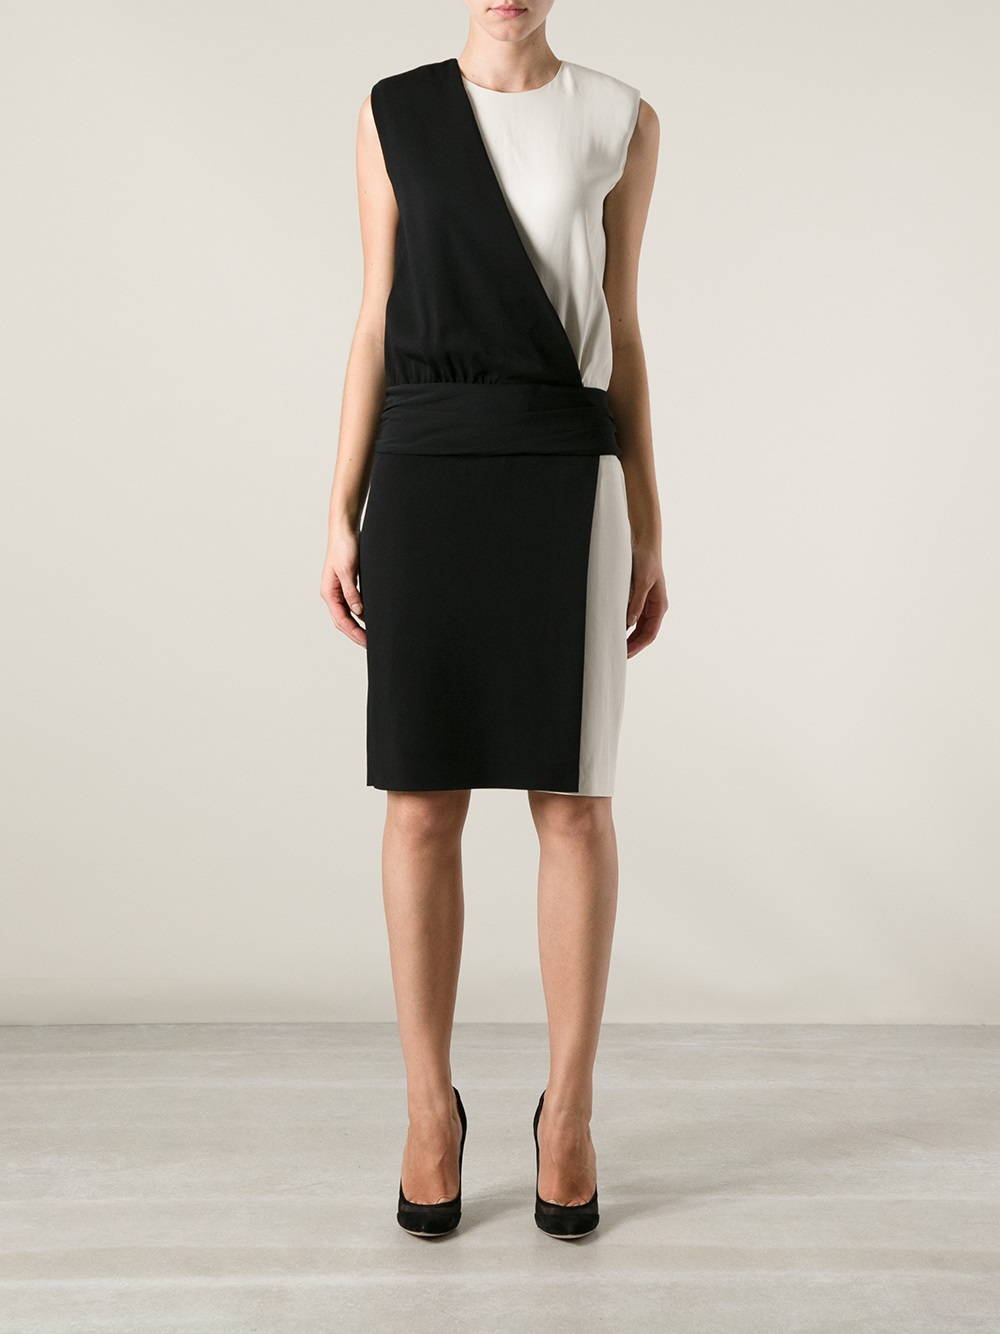 Iceberg Sleeveless Dress - Stefania Mode - Farfetch.com_files.jpg